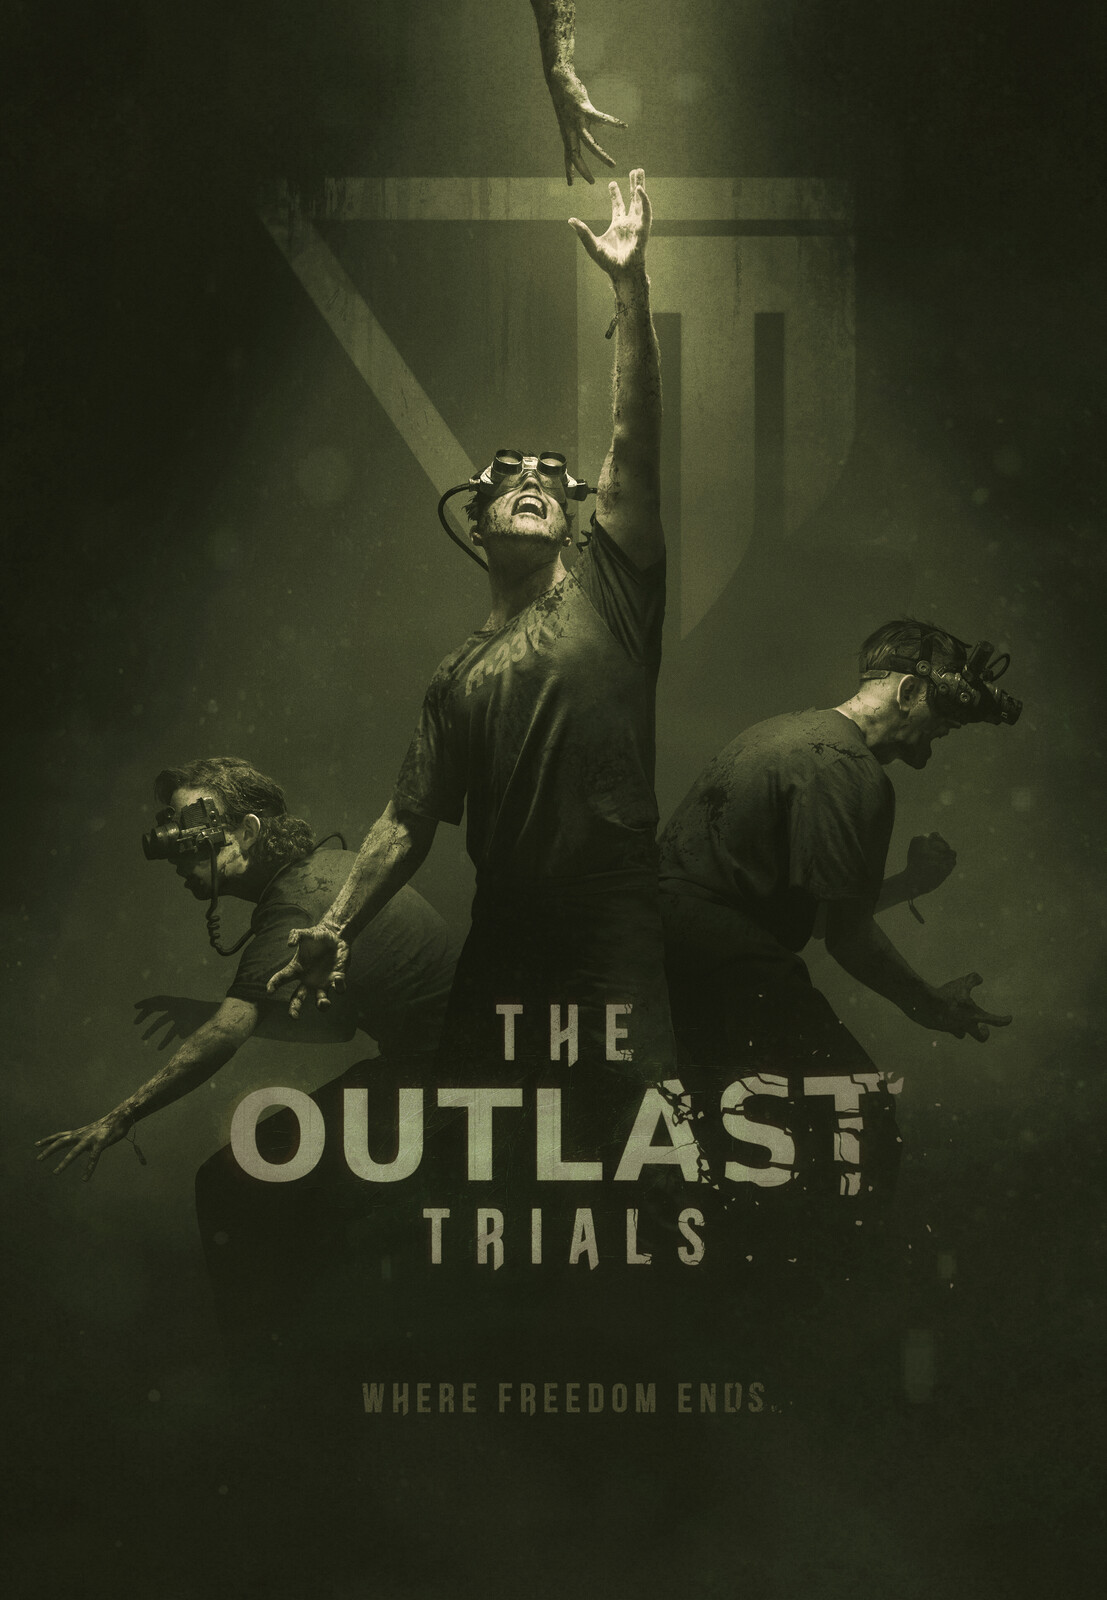 The Outlast Trials - cinematic trailer